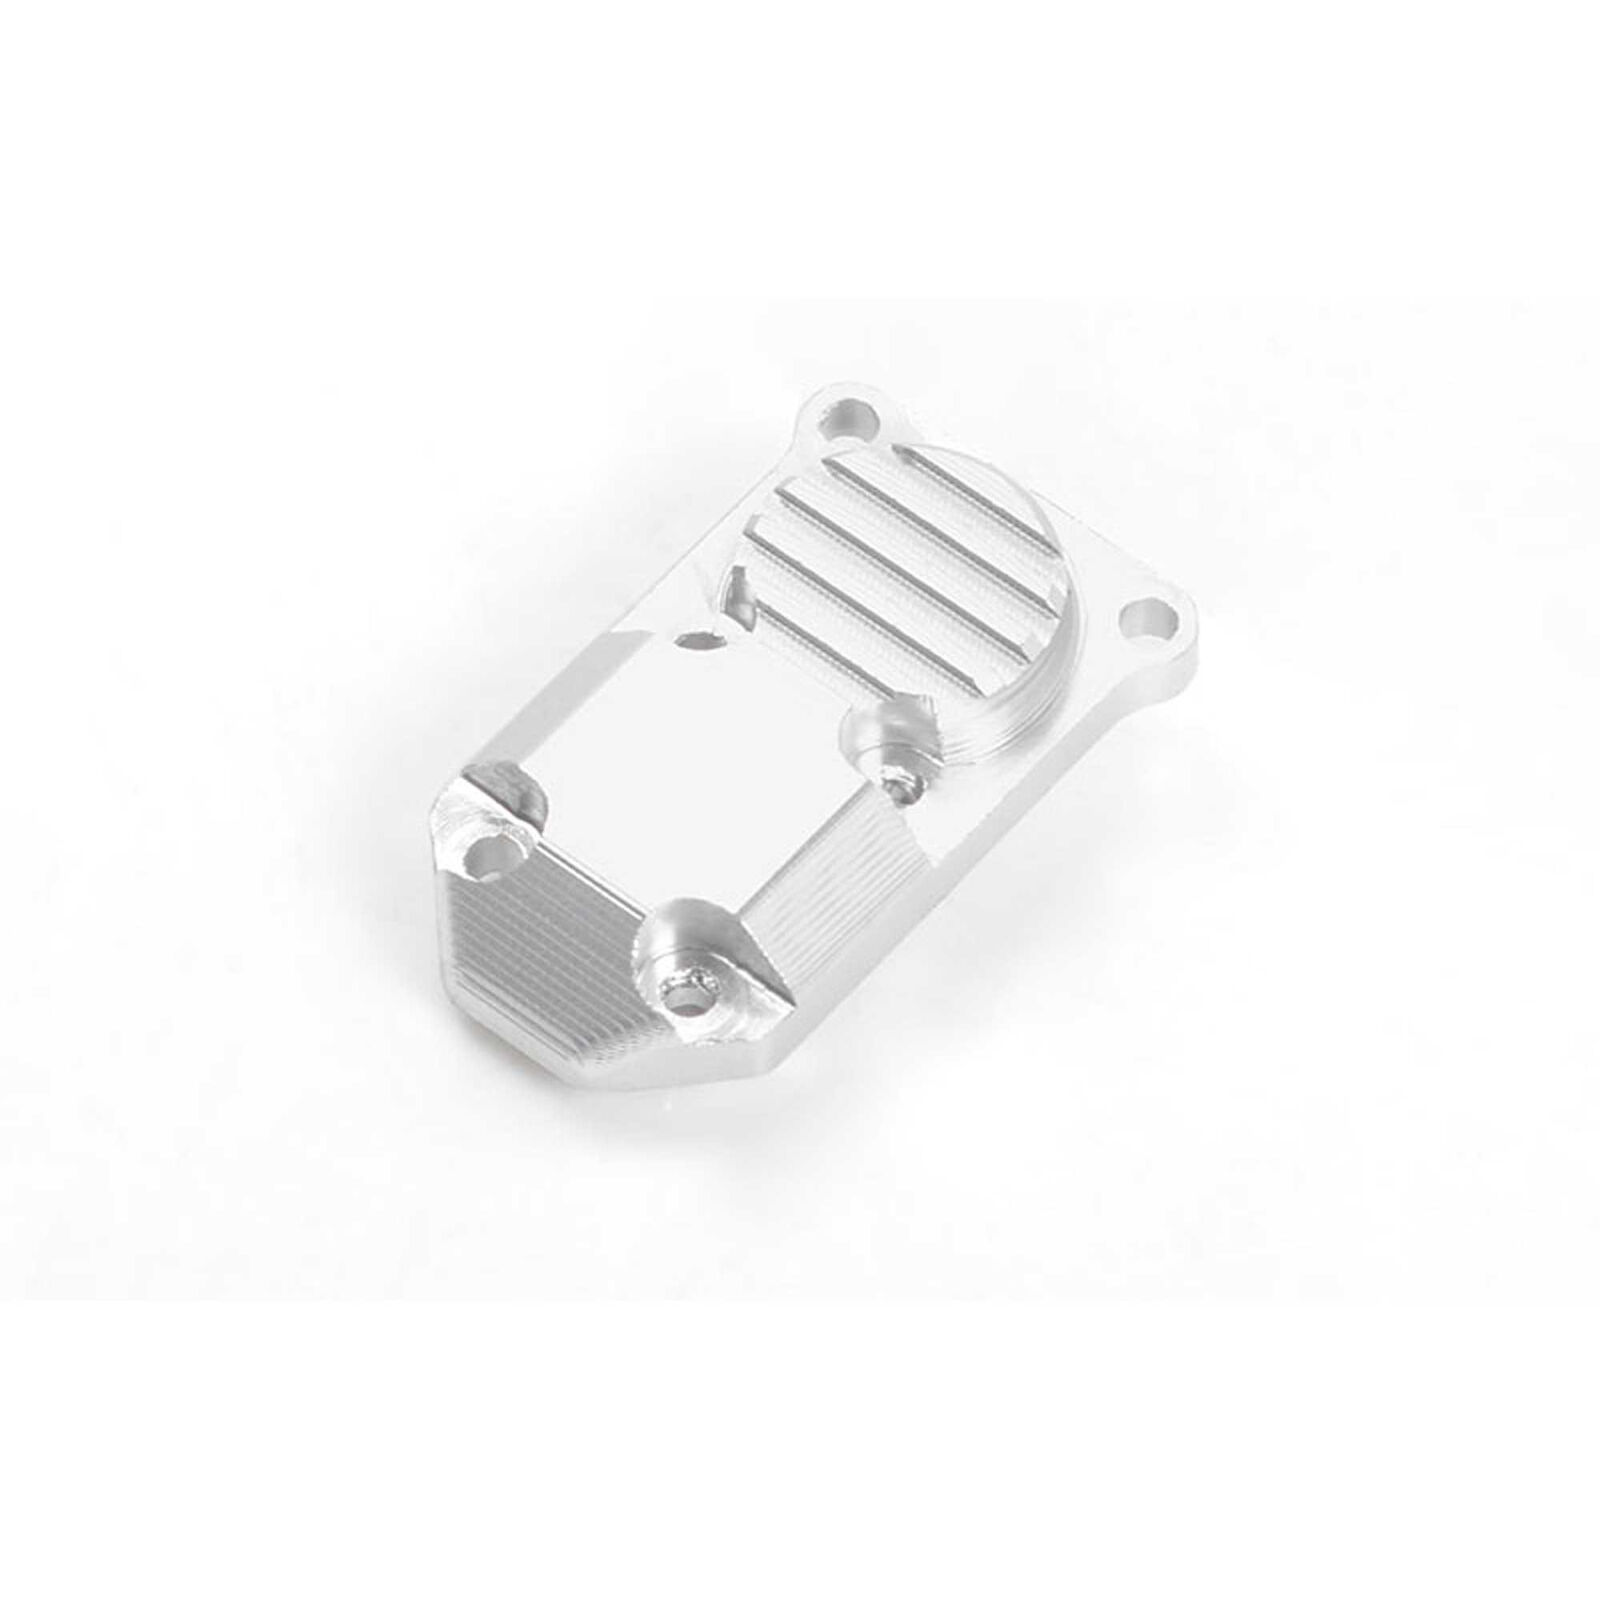 Diff Cover for Axial SCX24 1/24 RTR Silver